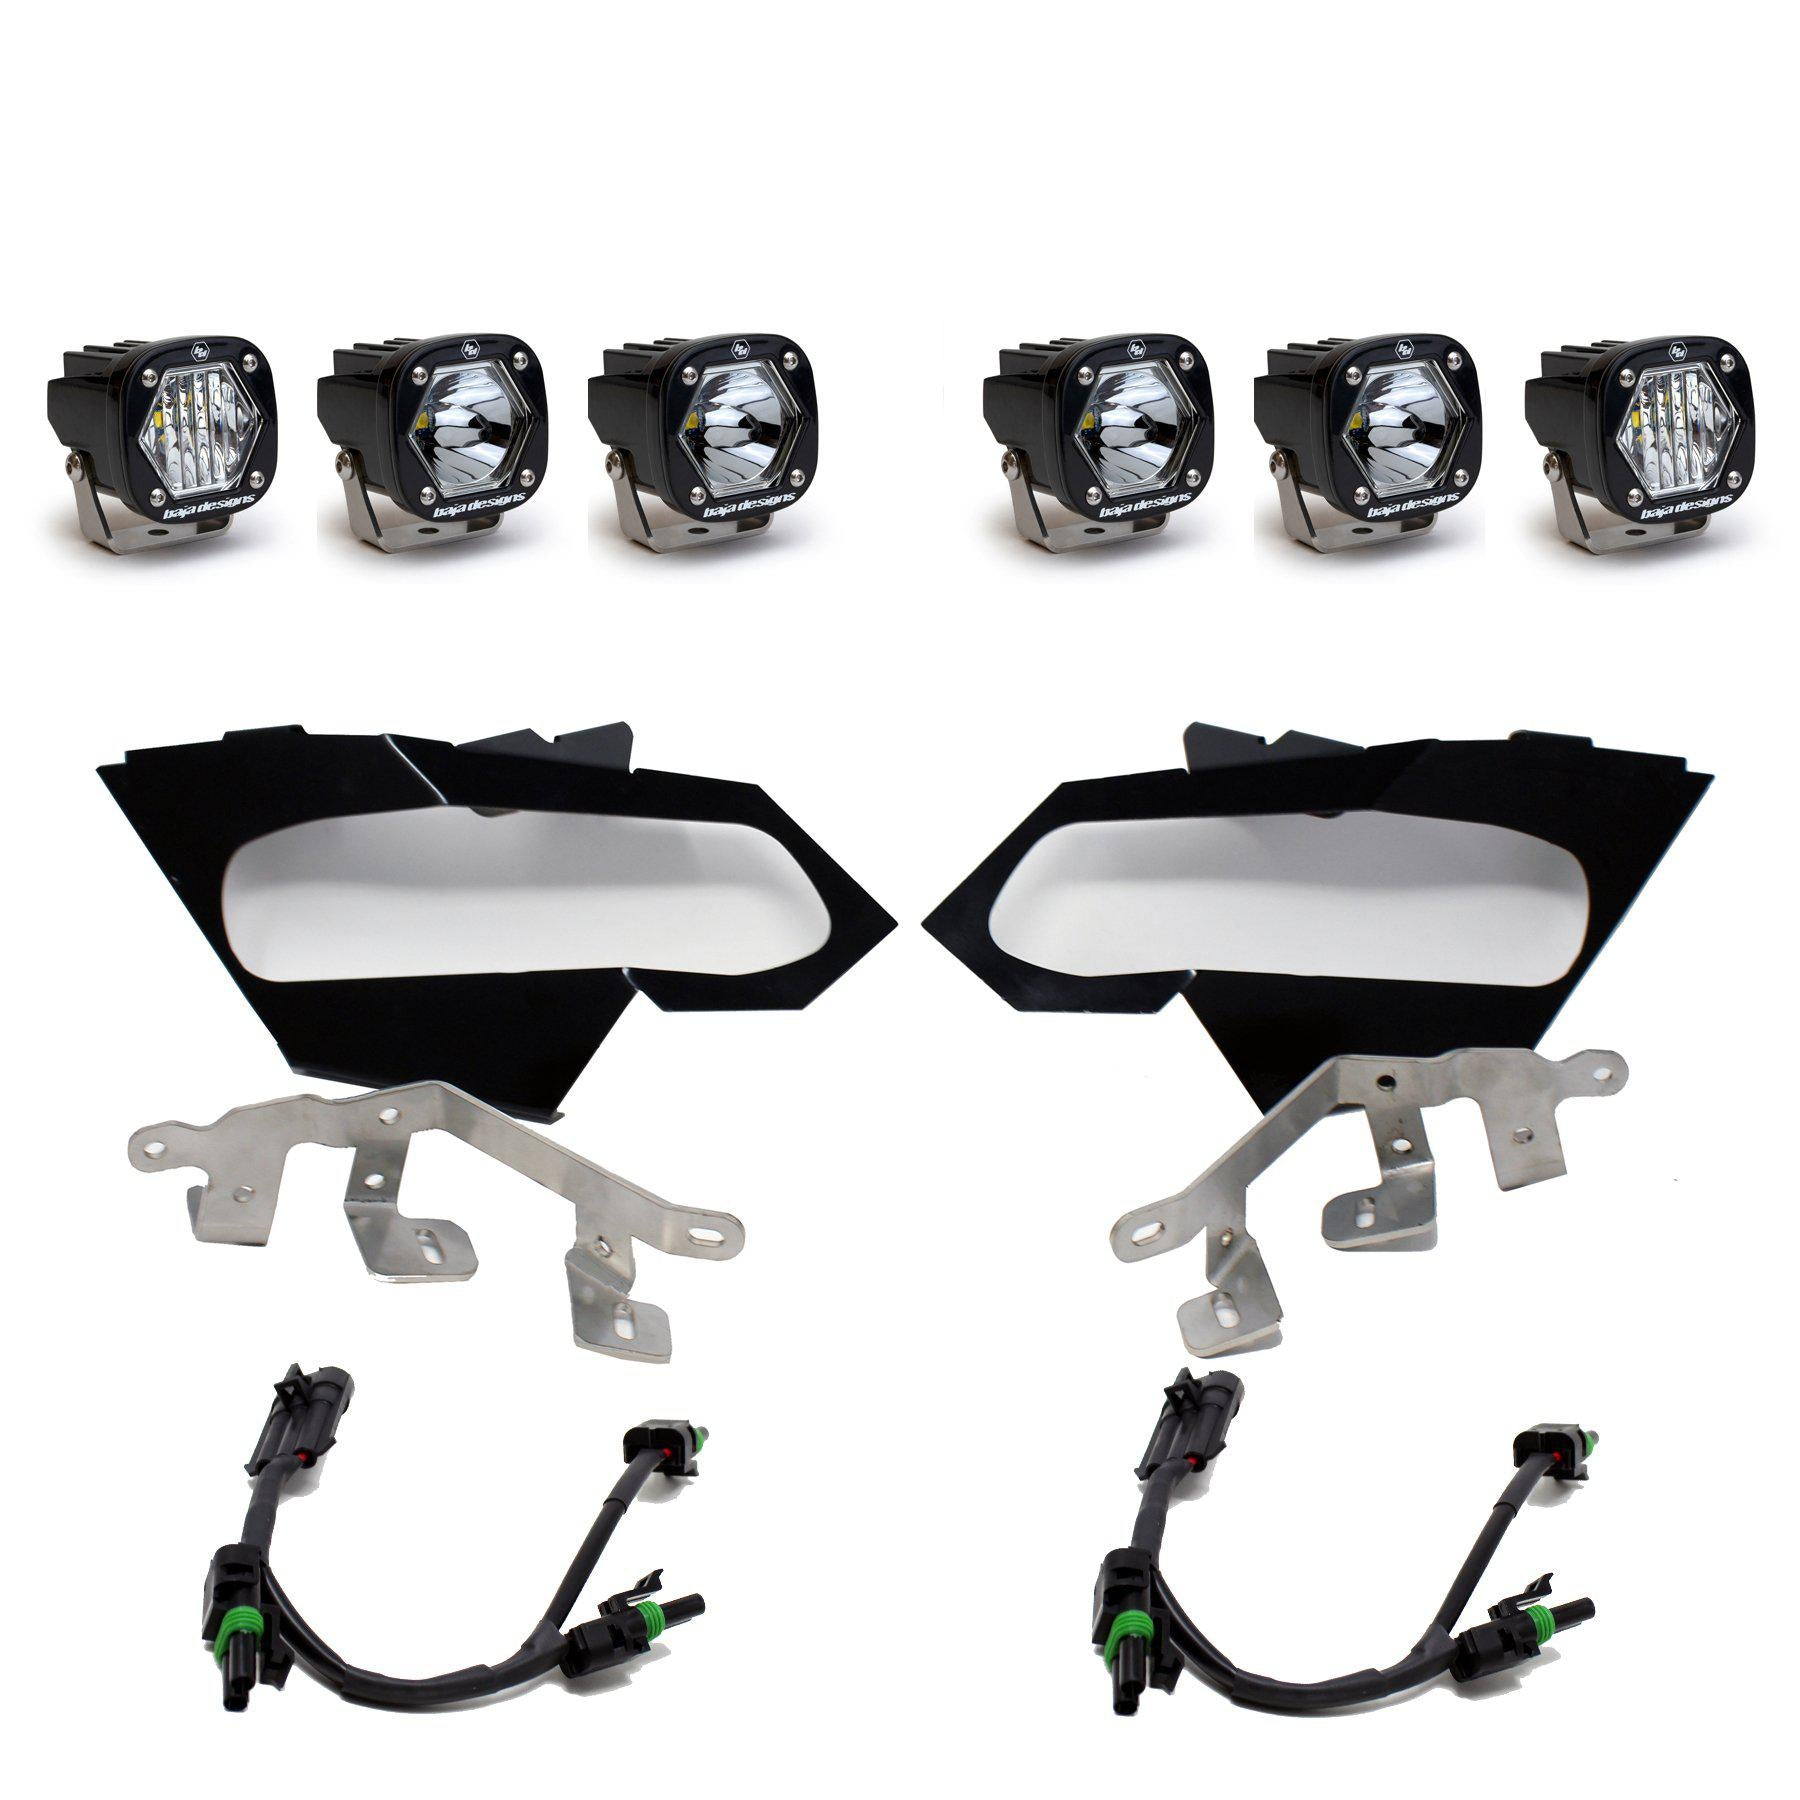 Baja Designs S1 Spot and Wide Cornering Headlight Kit-Headlight Kit-Baja Designs-Black Market UTV